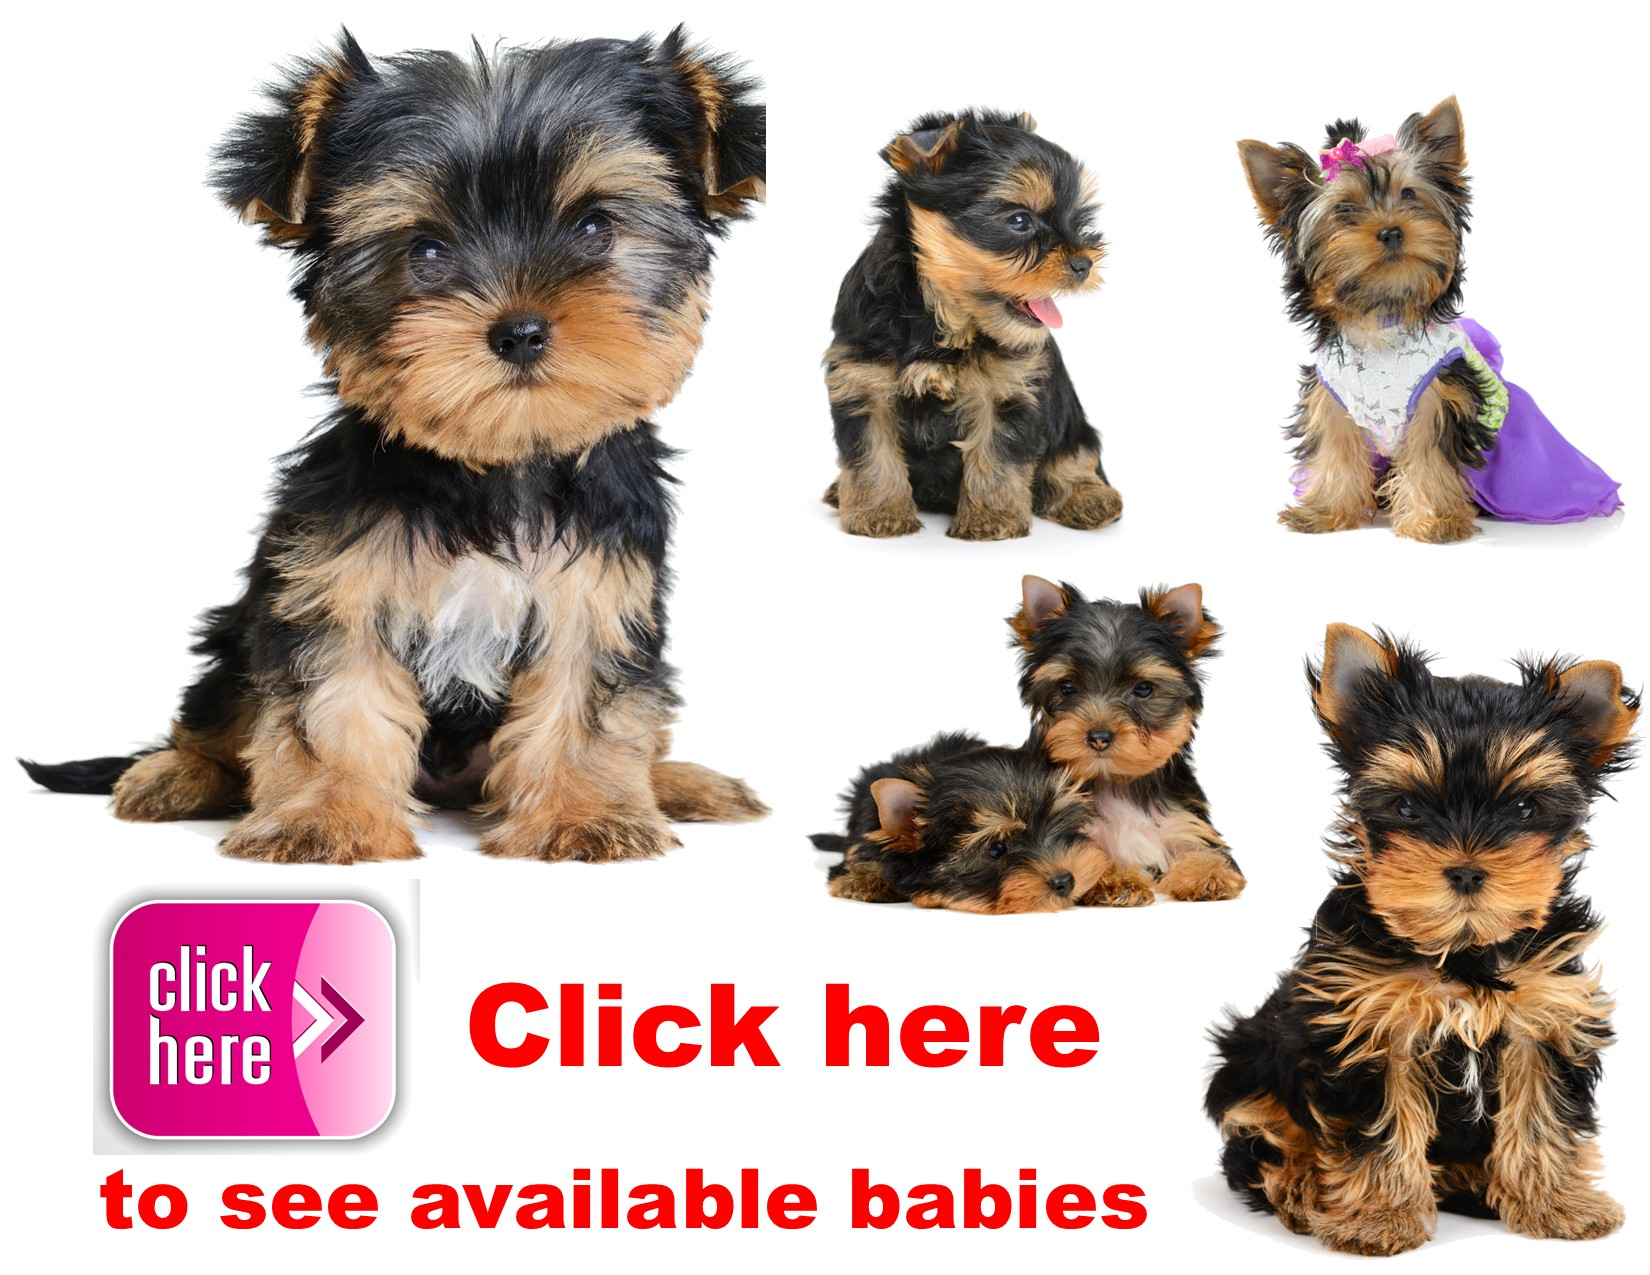 Yorkshire, Terrier, puppy, puppies, kennels, breeder, breeders, puppies for sale, for, sale, adoptio